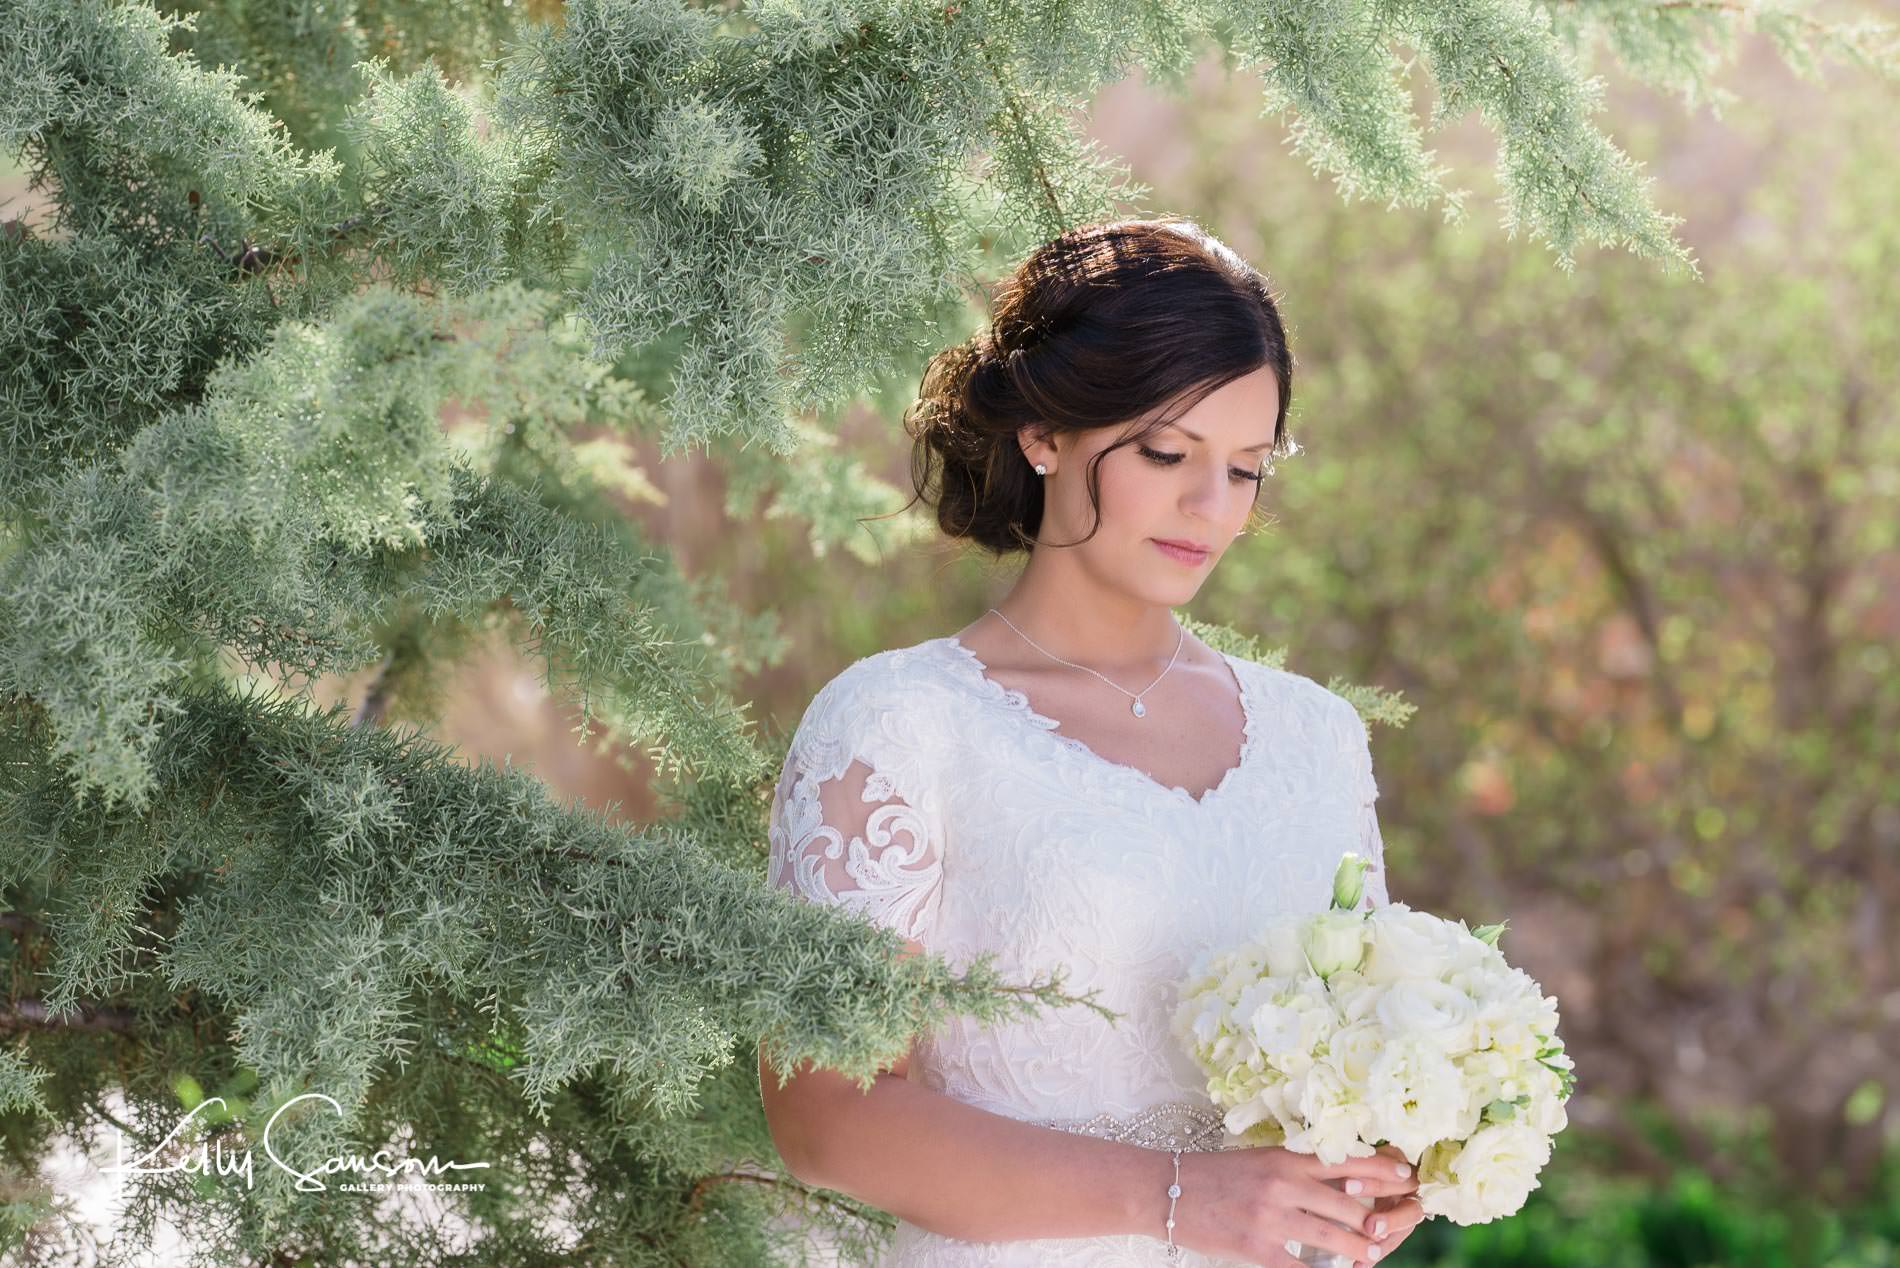 A bride looks at her bouquet next to a pine tree for Utah bridal photography.